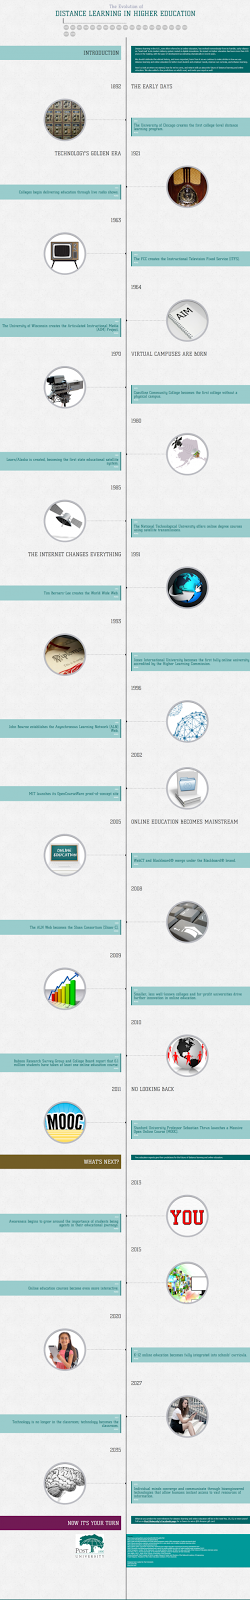 http://elearninginfographics.com/the-evolution-of-distance-learning-in-higher-education-infographic/